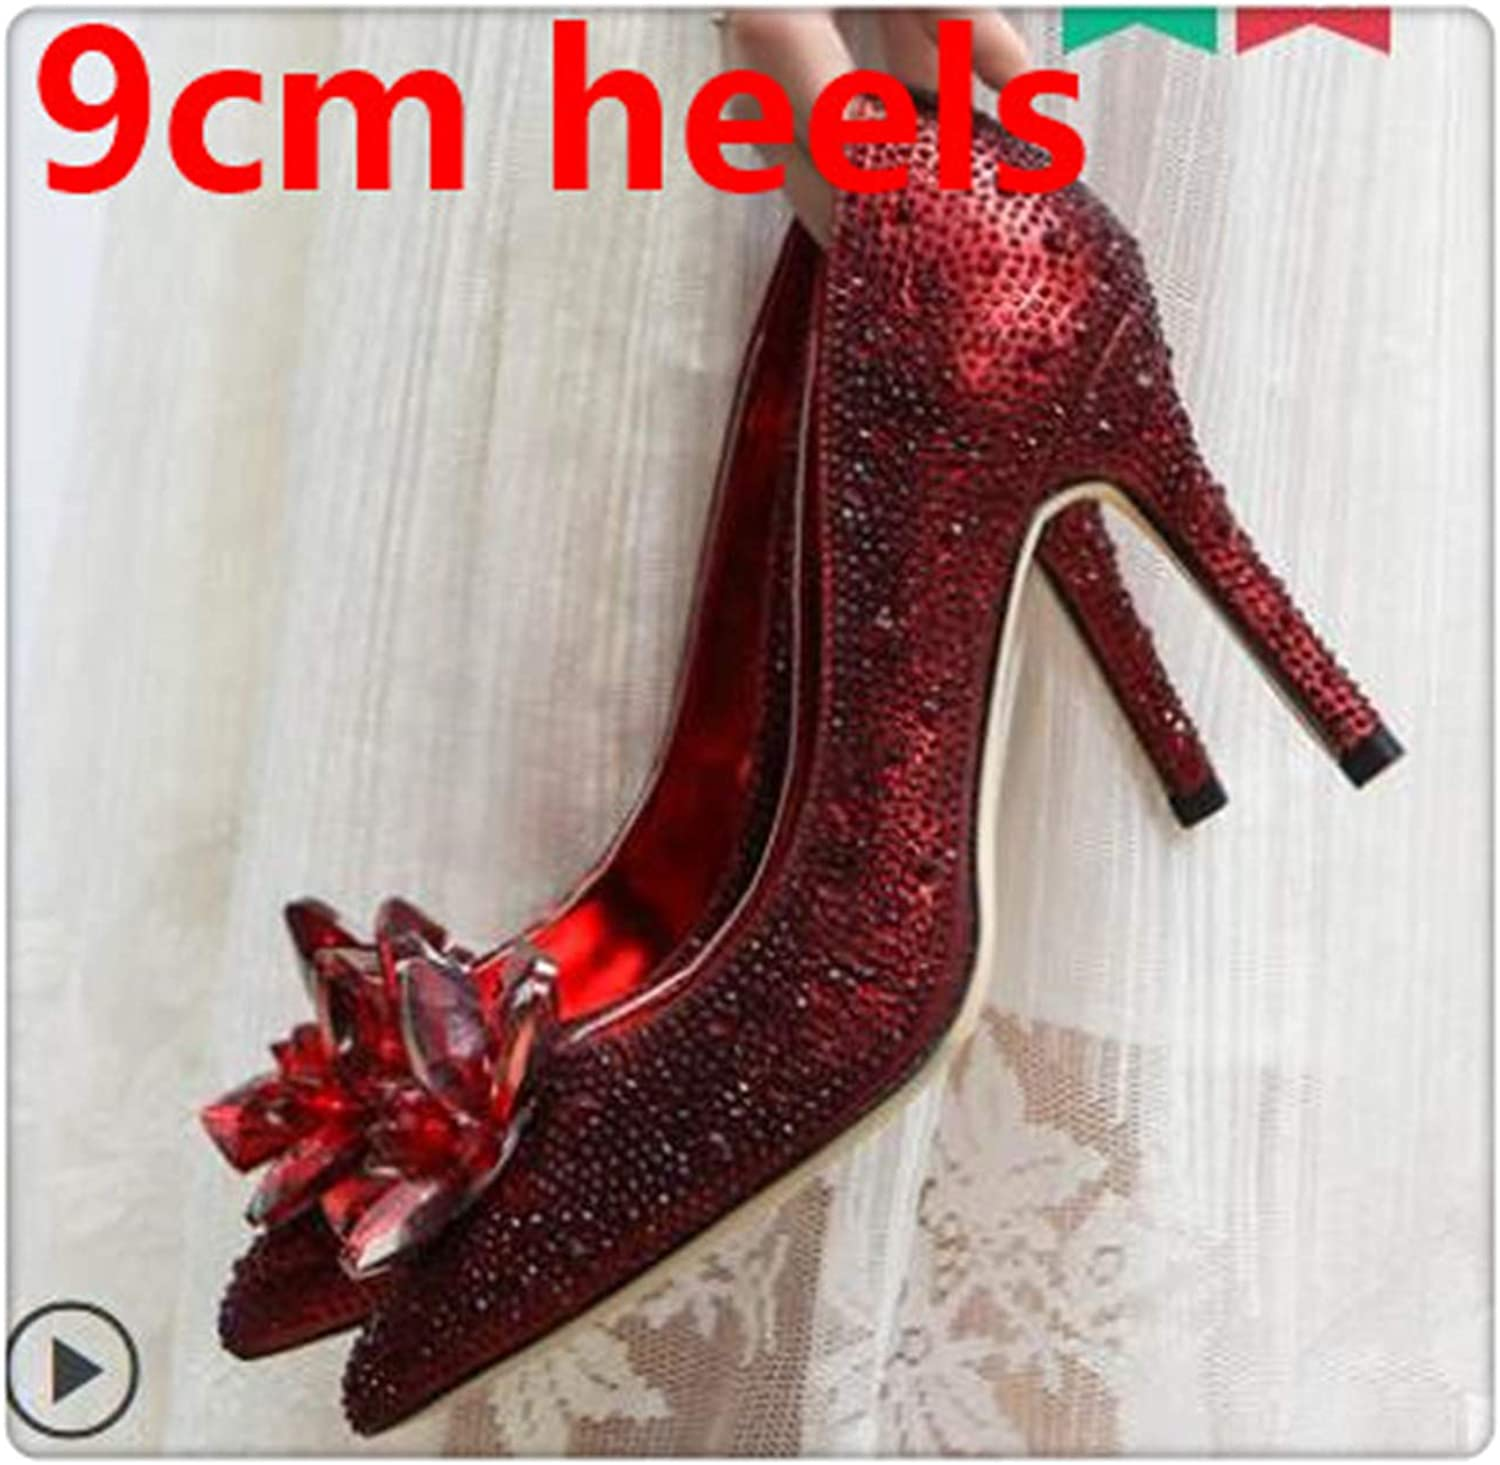 BIONGTY& Rhinestone High Heels Cinderella shoes Pumps Pointed Toe Woman Crystal Party